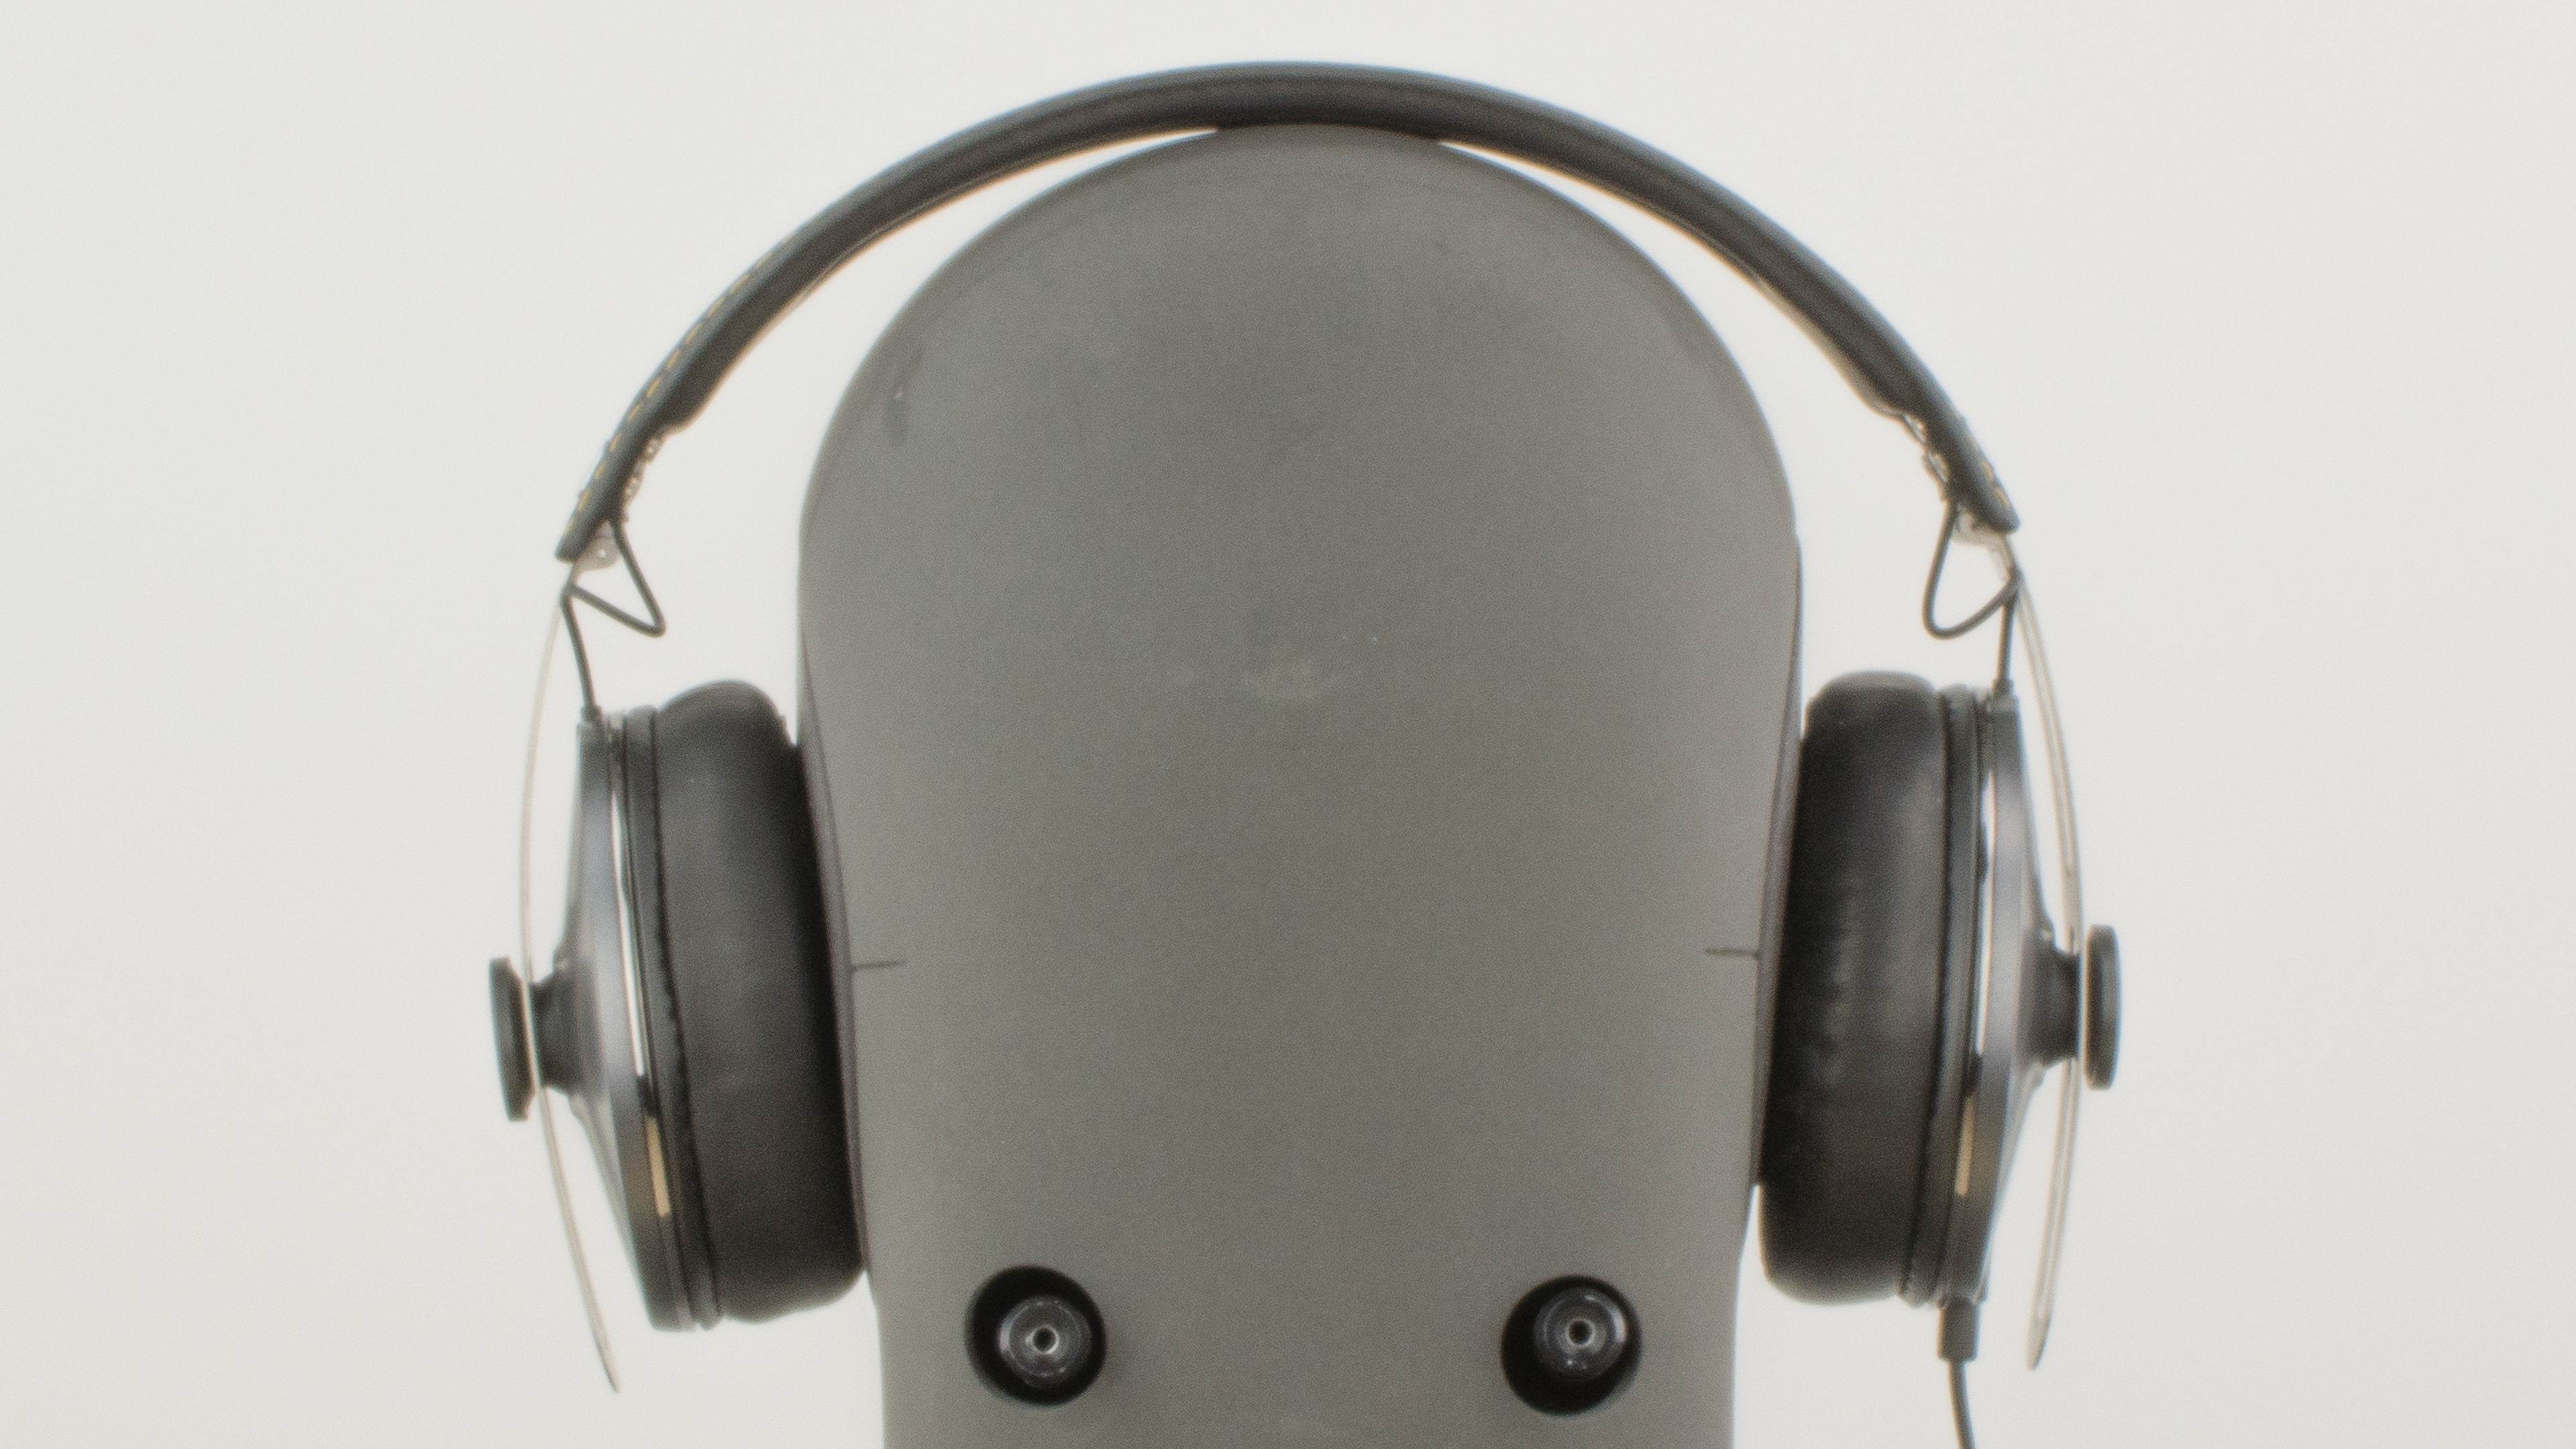 Sennheiser Hd1 Over Ear Momentum 20 Review 2i Black Stability Picture